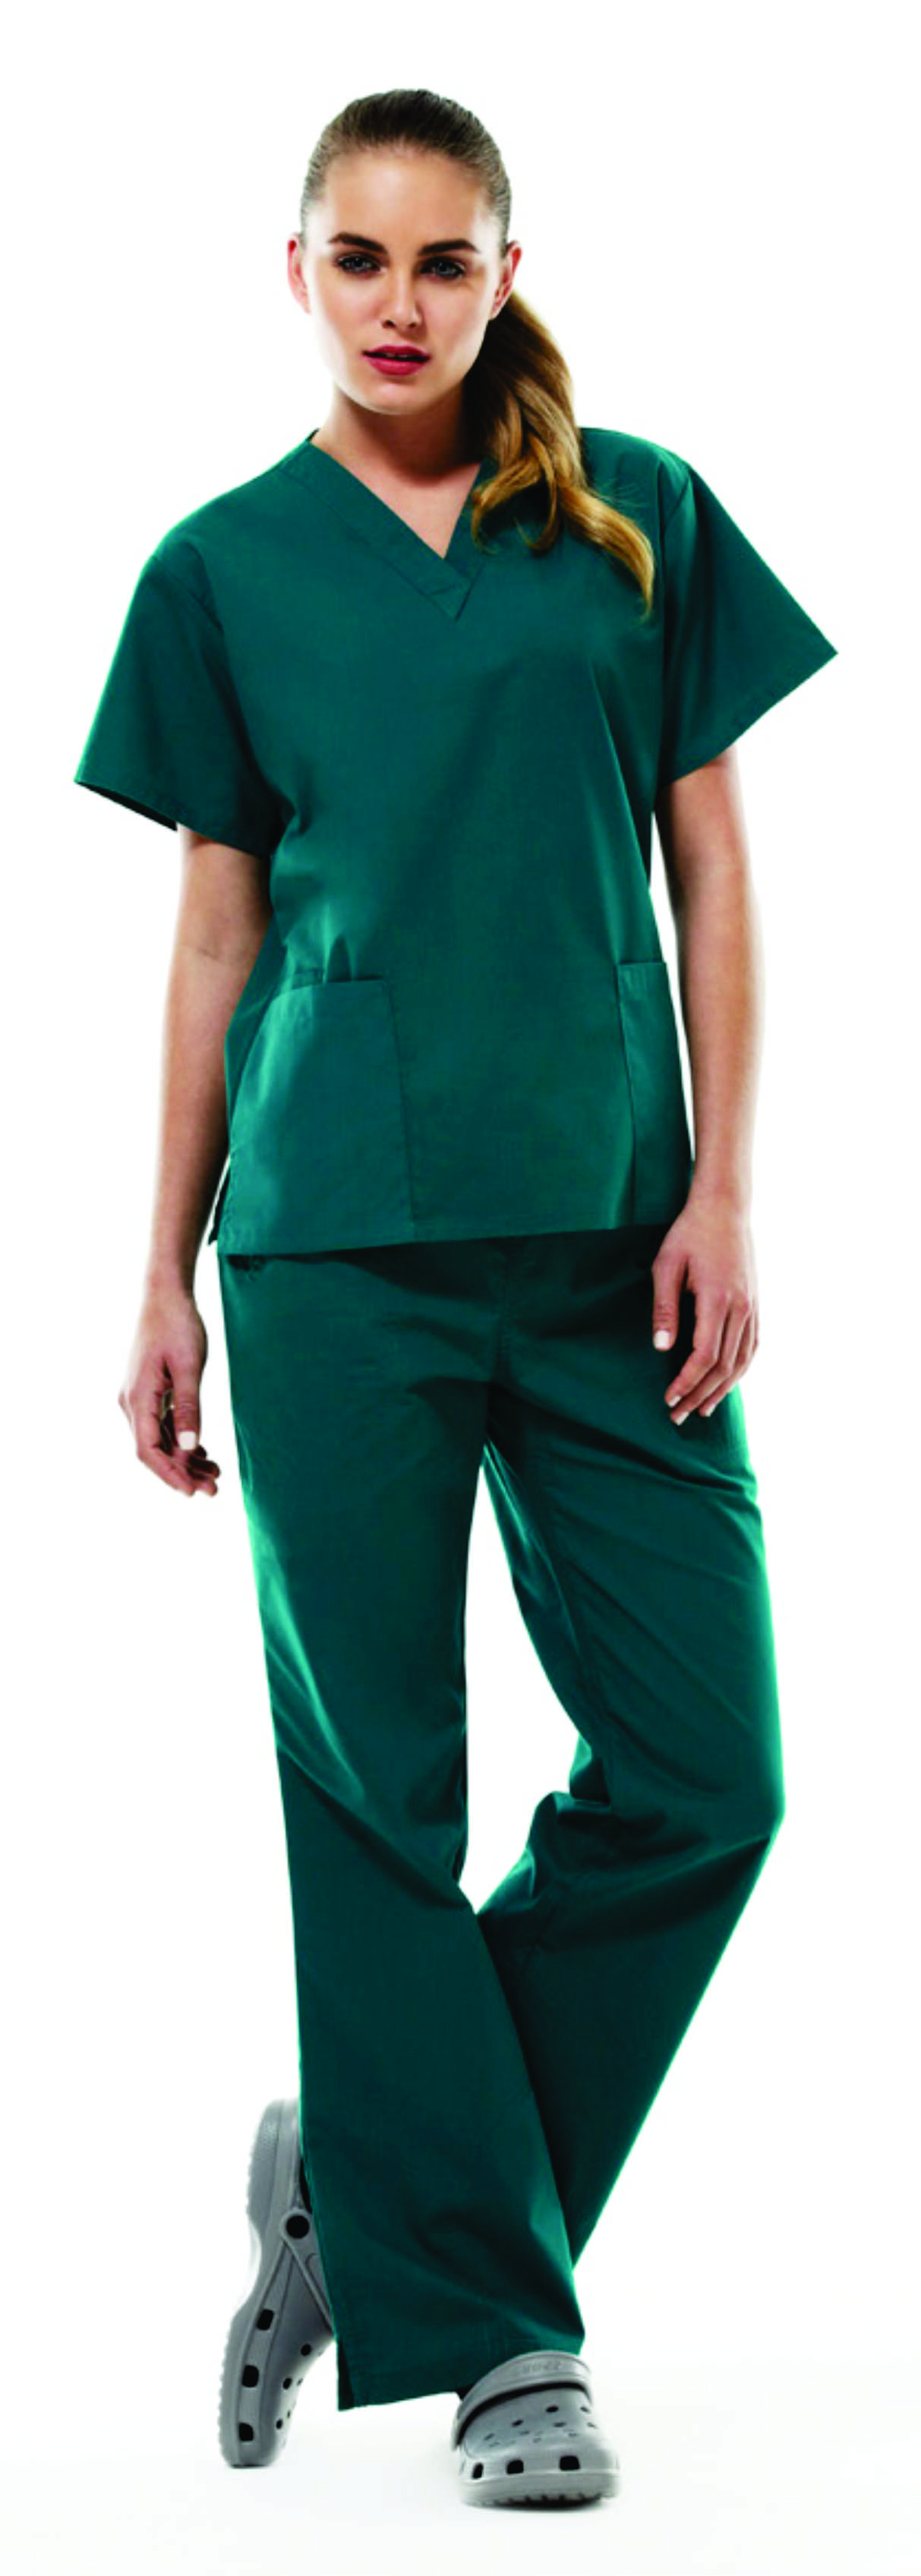 Patients Uniform 04